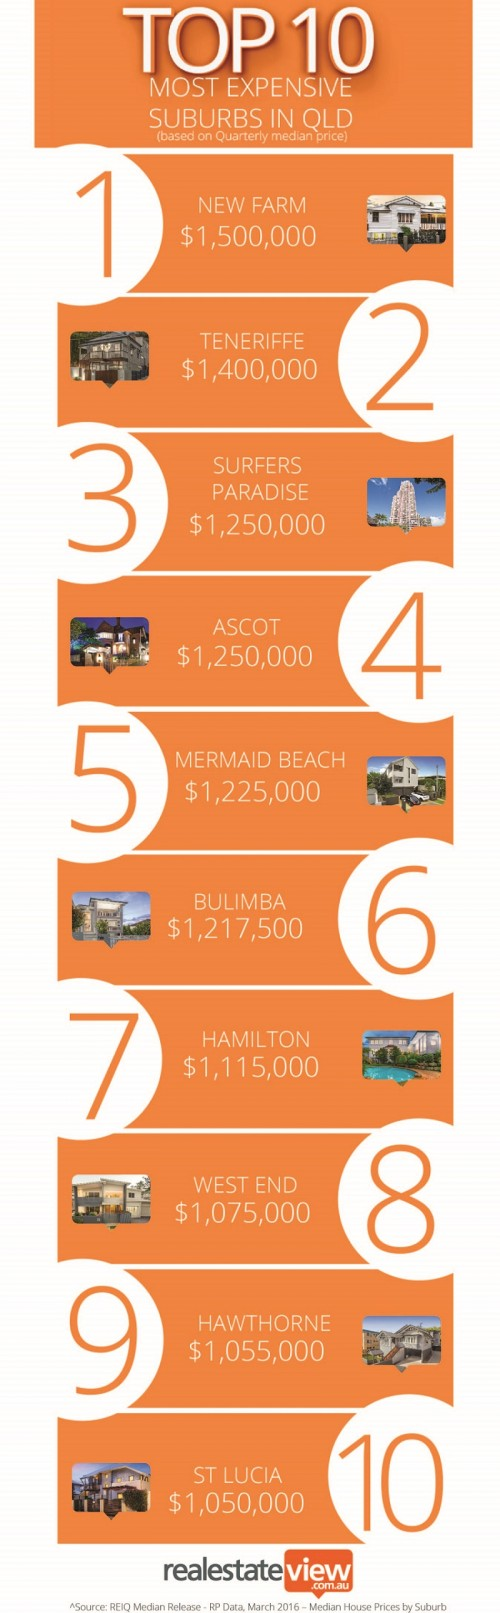 Top10 most expensiveQLD